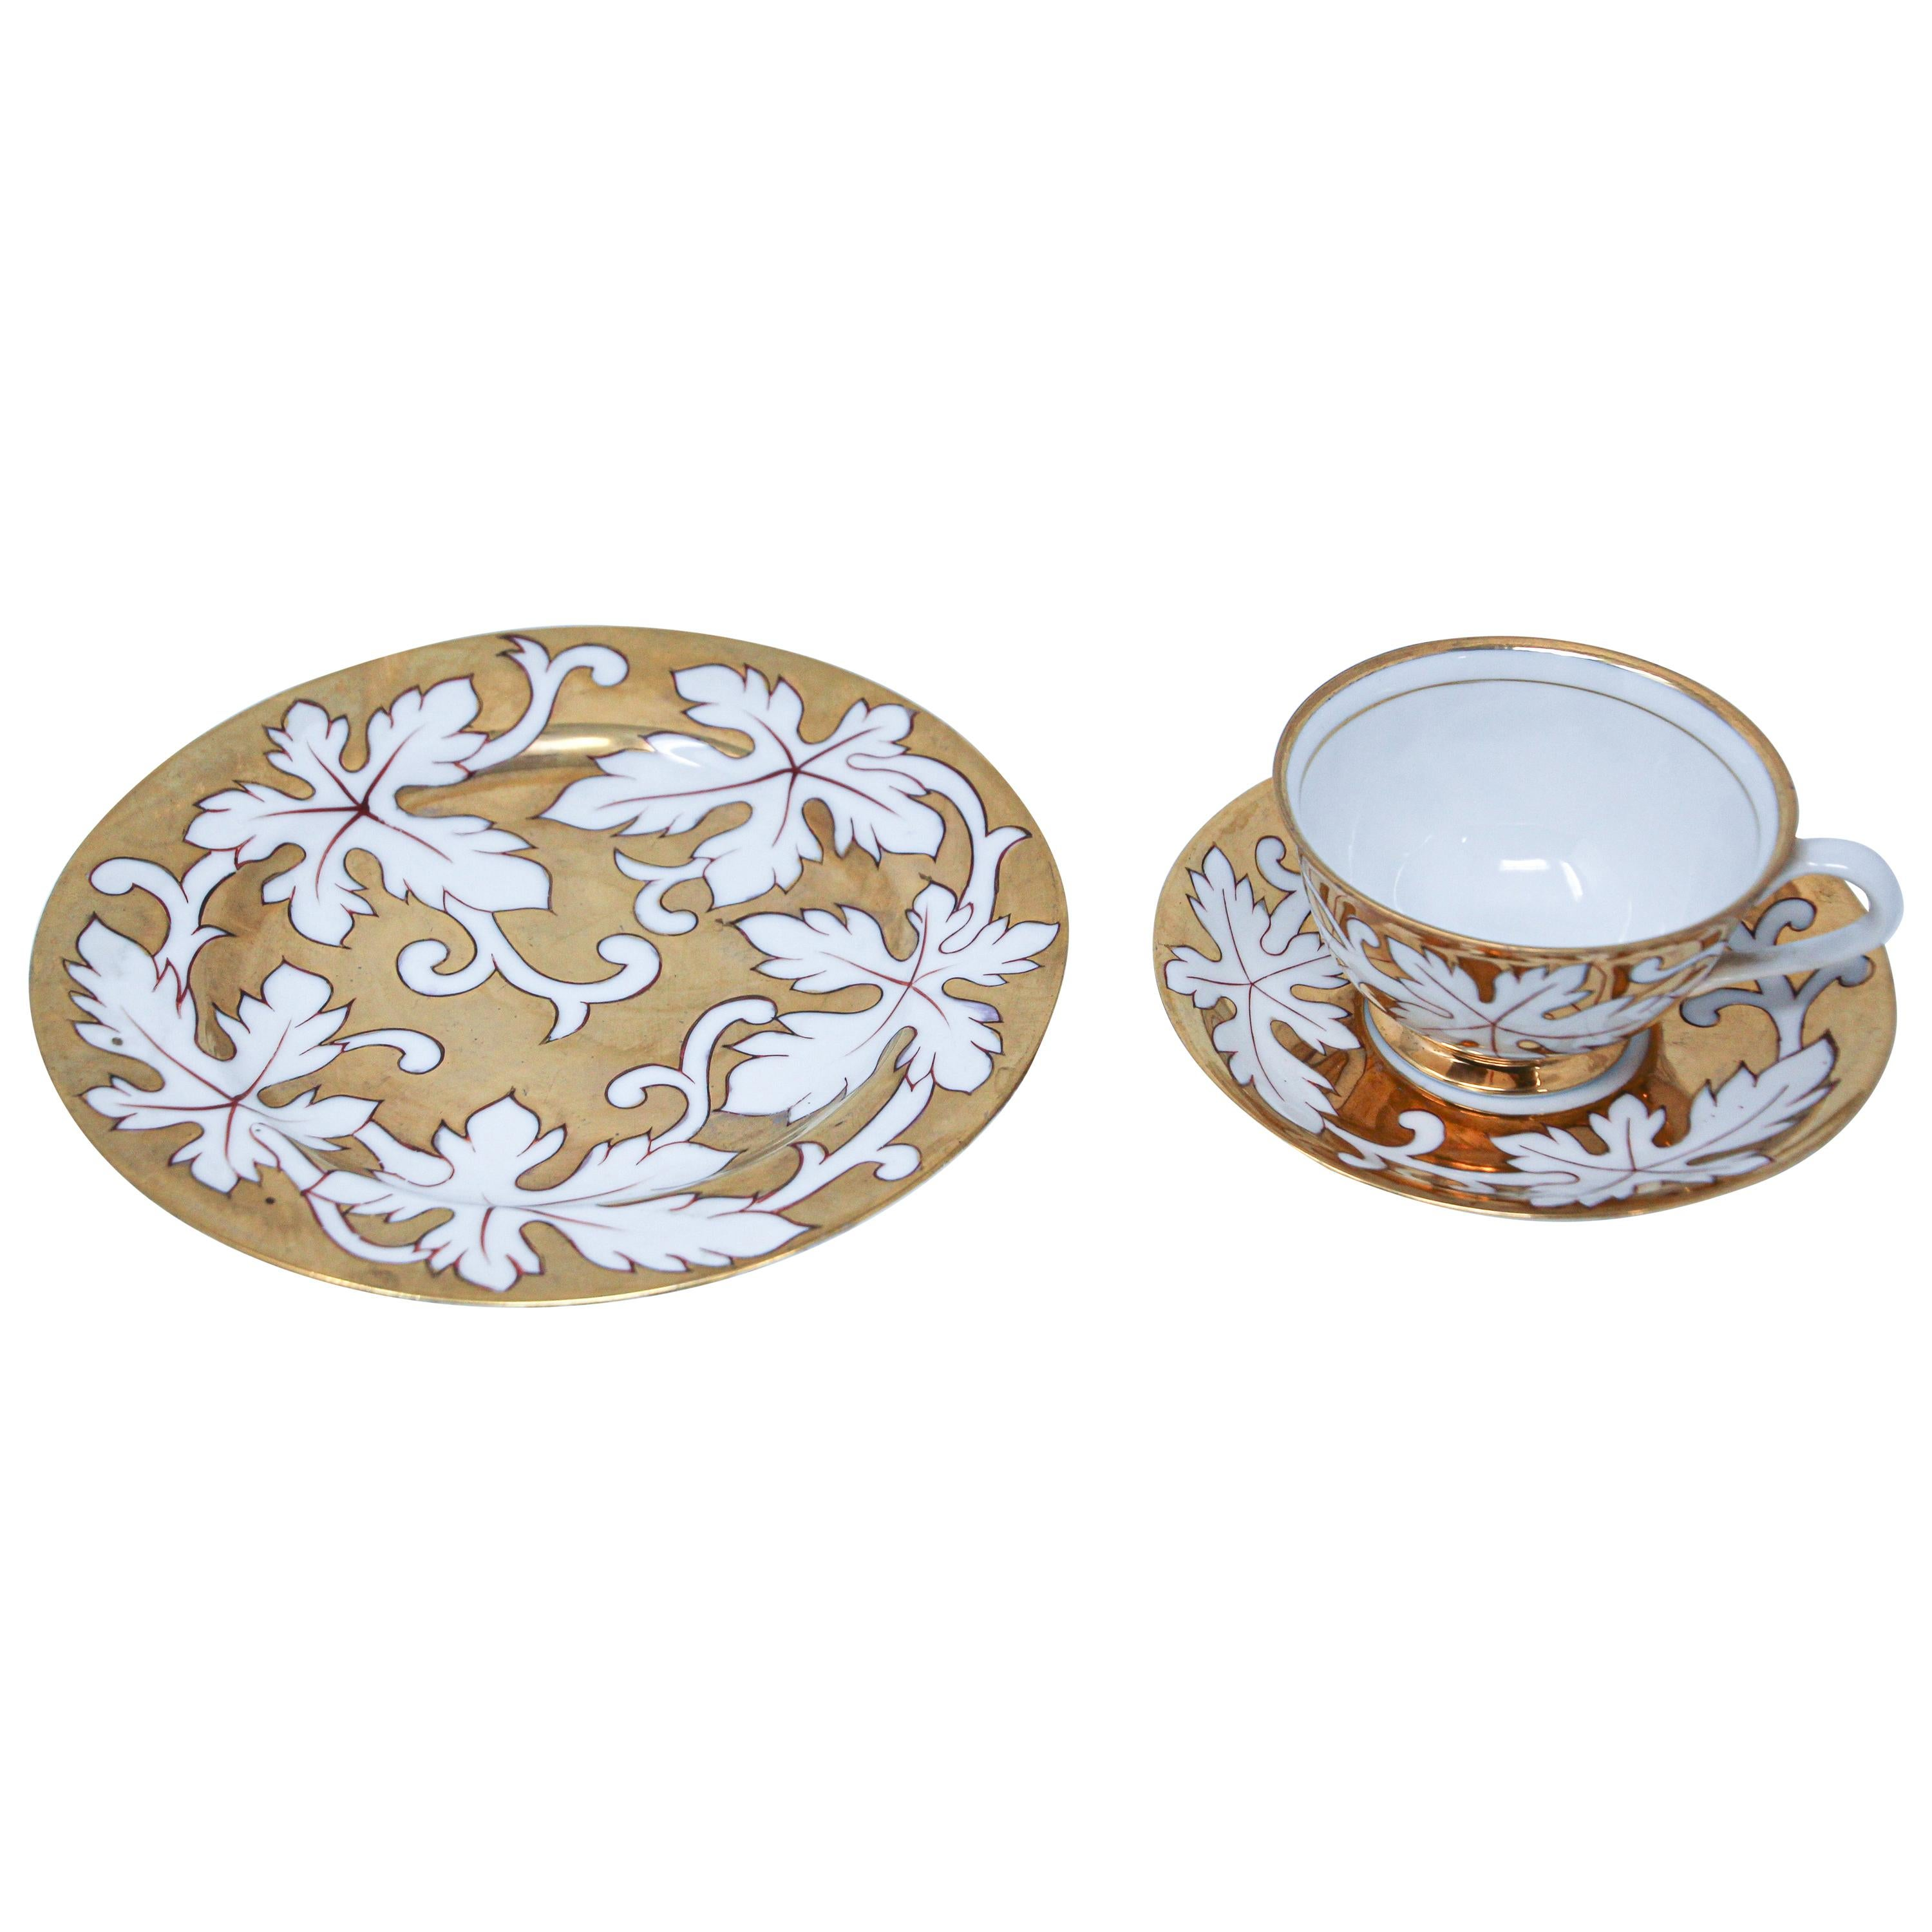 Hand Painted Gilt Porcelain Tea, Coffee Cup with Desert Plate